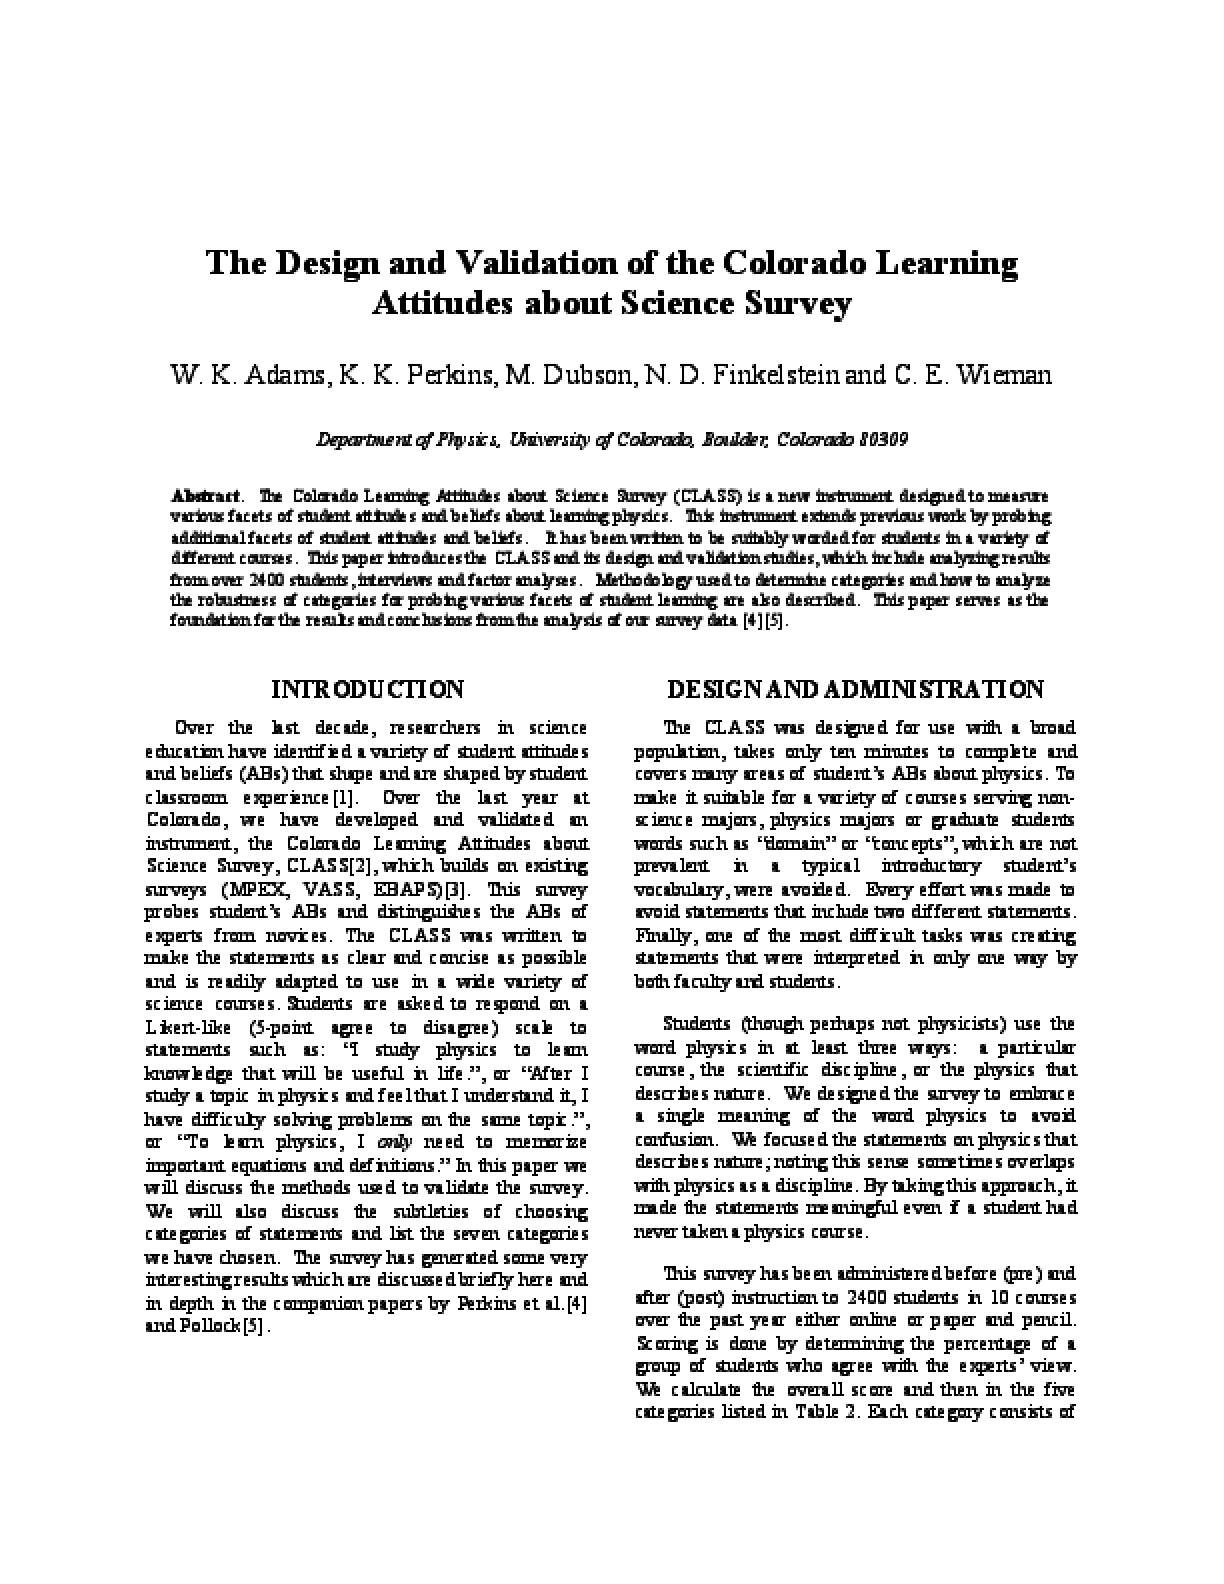 The Design and Validation of the Colorado Learning Attitudes about Science Survey